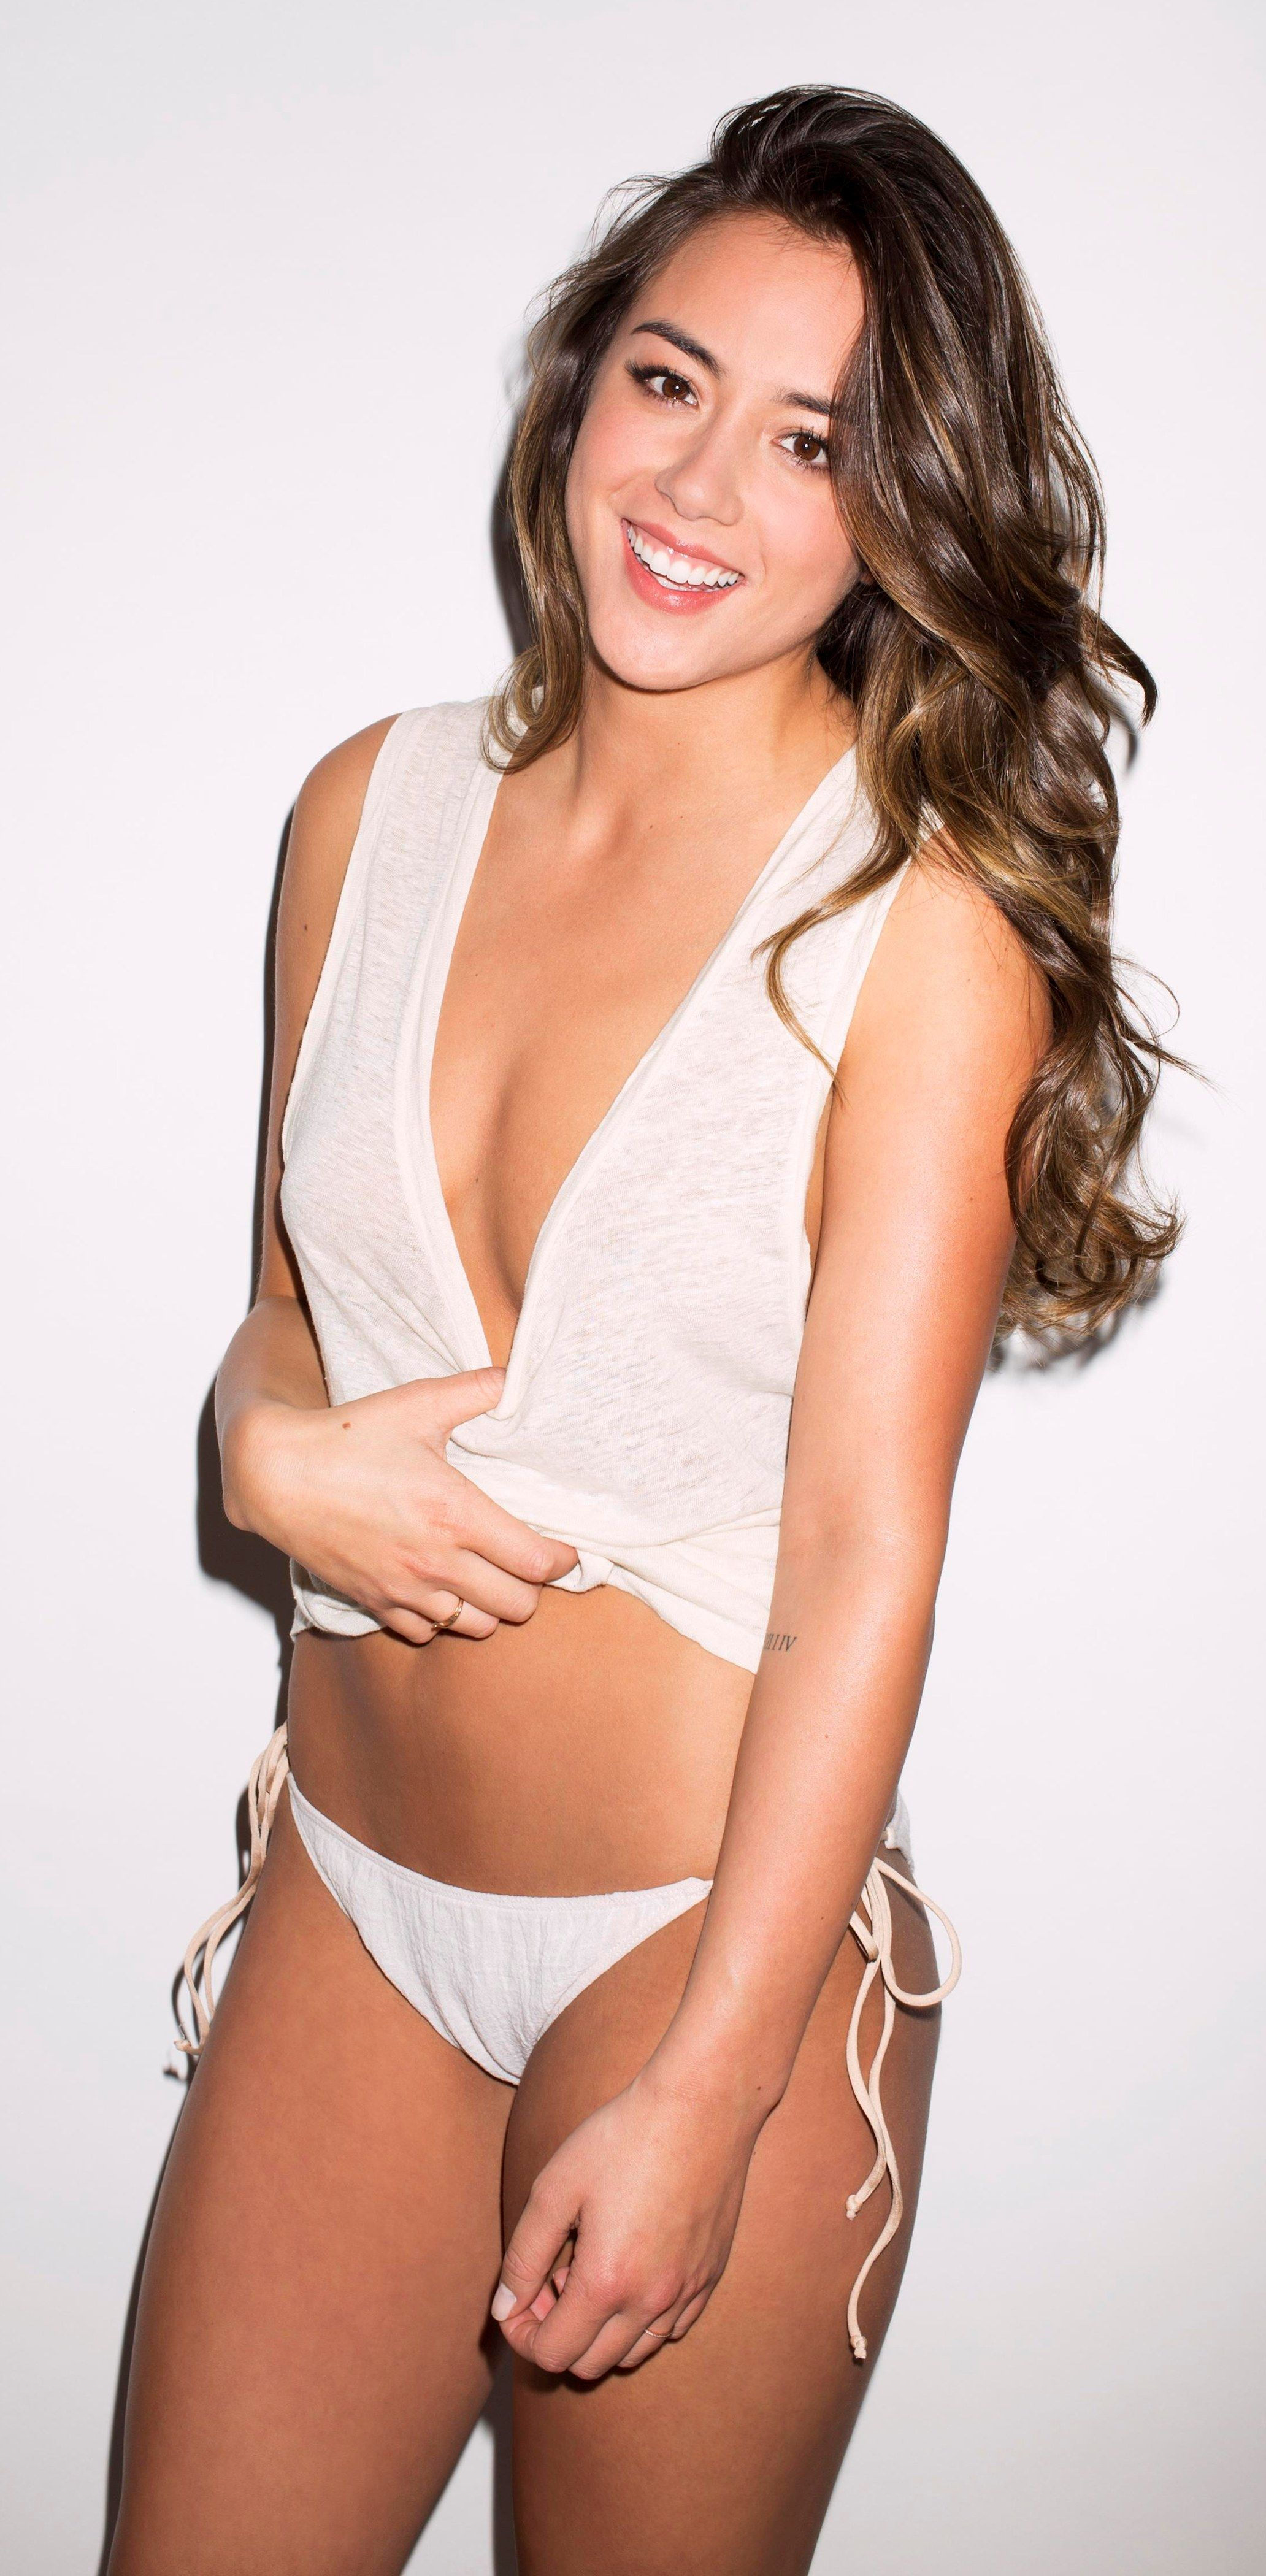 Chloe Bennet Chloe Bennet Pinterest Chloe Bennet And